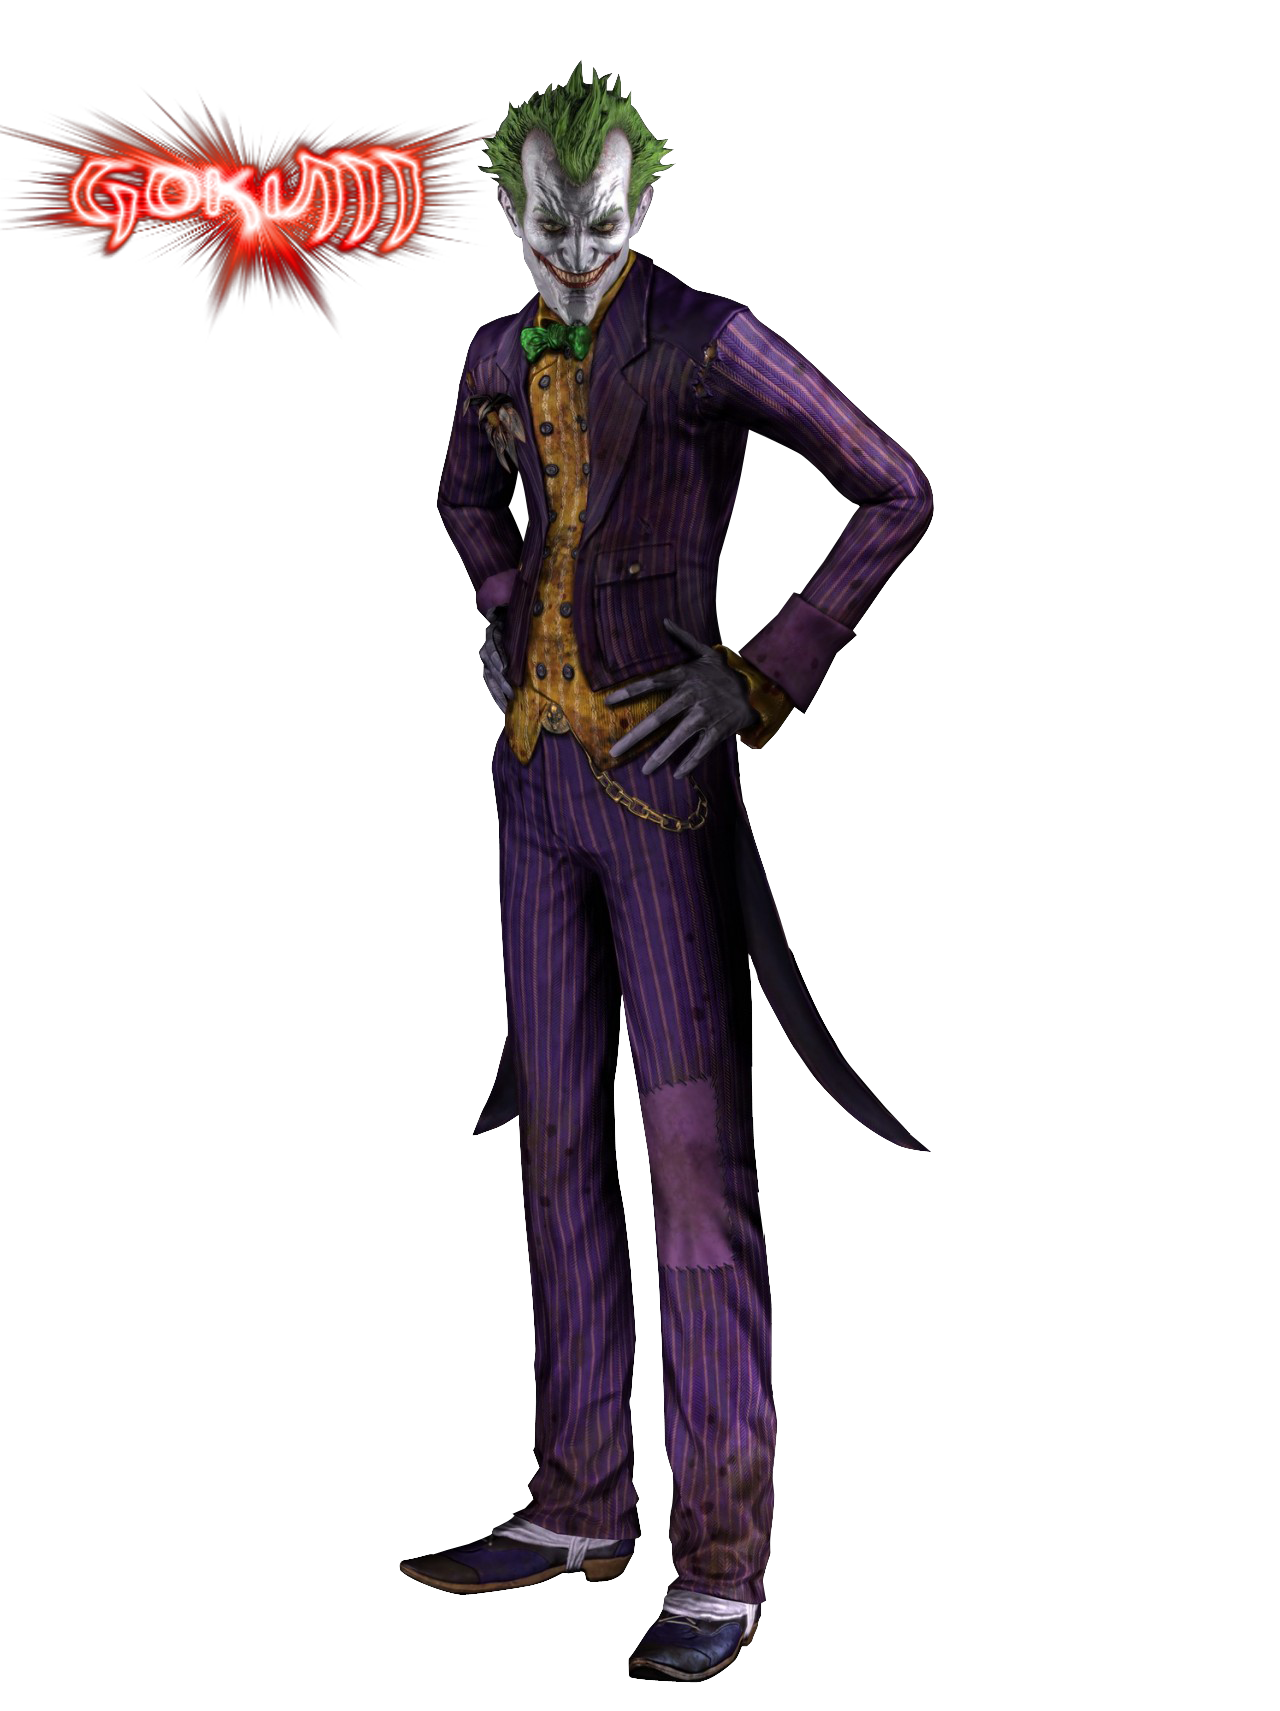 Batman Joker Photos PNG Image